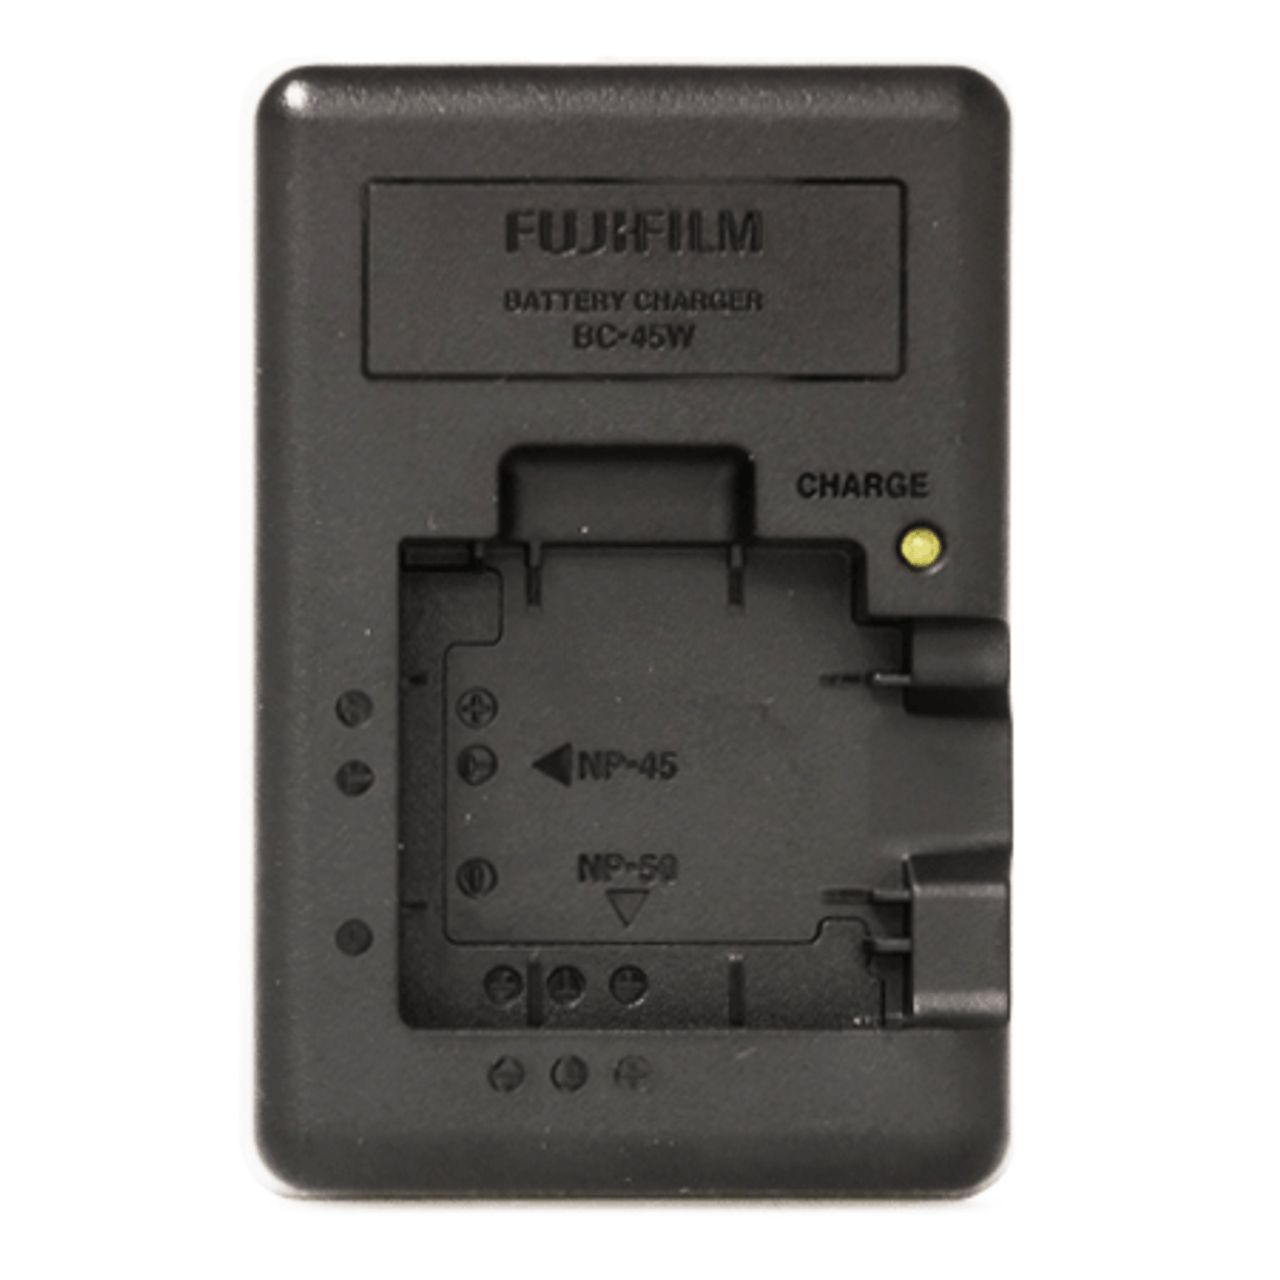 Fujifilm BC-45W Charger